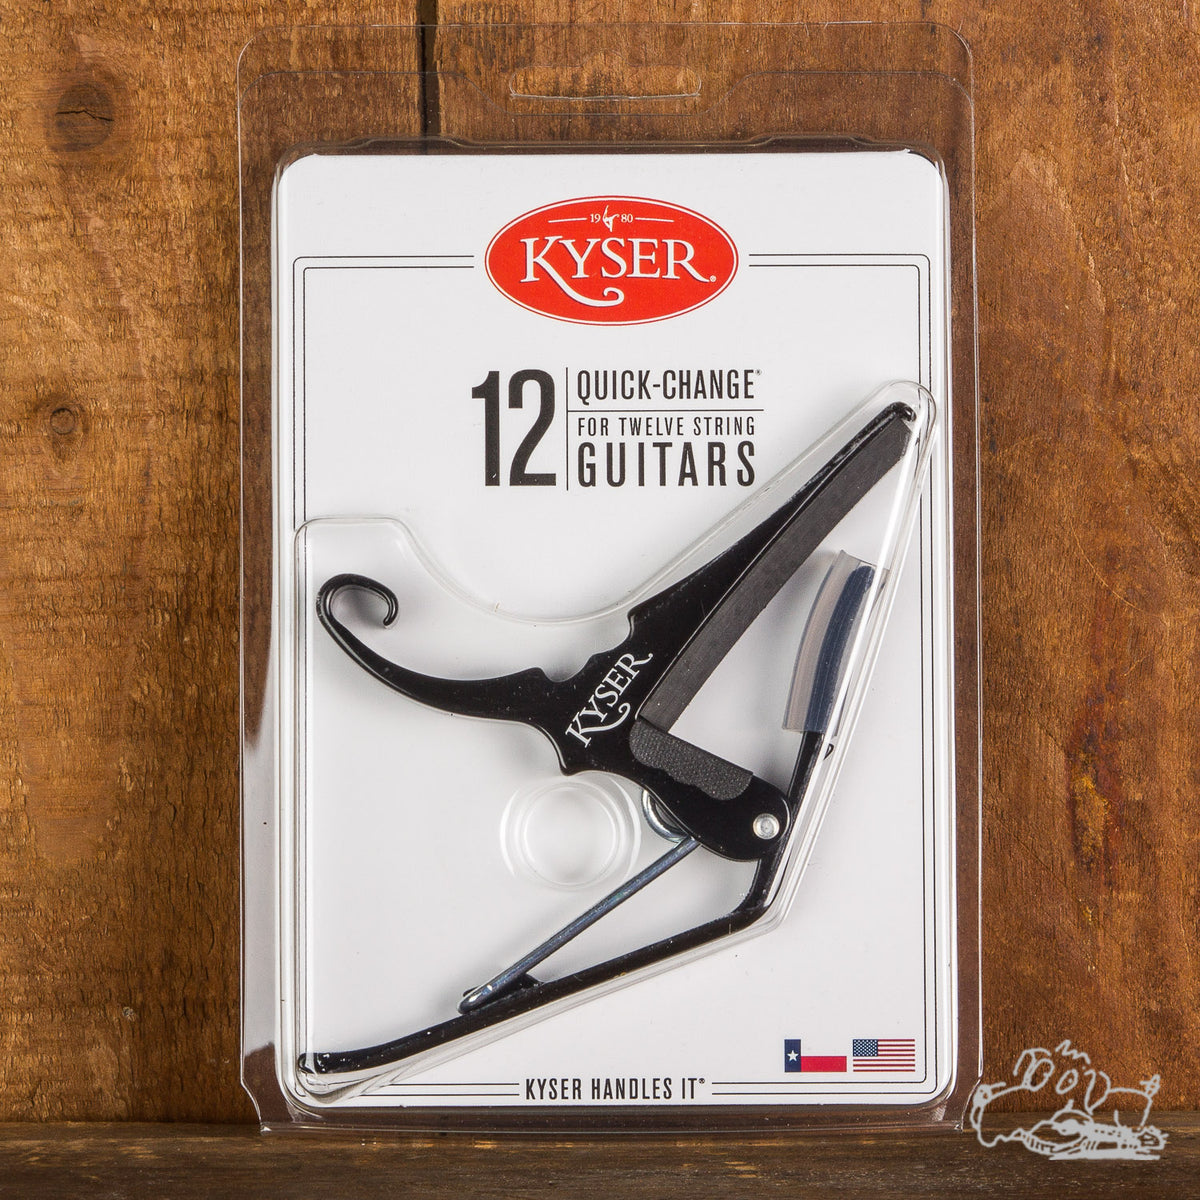 Kyser® Quick-Change® Capo for Twelve String Guitars